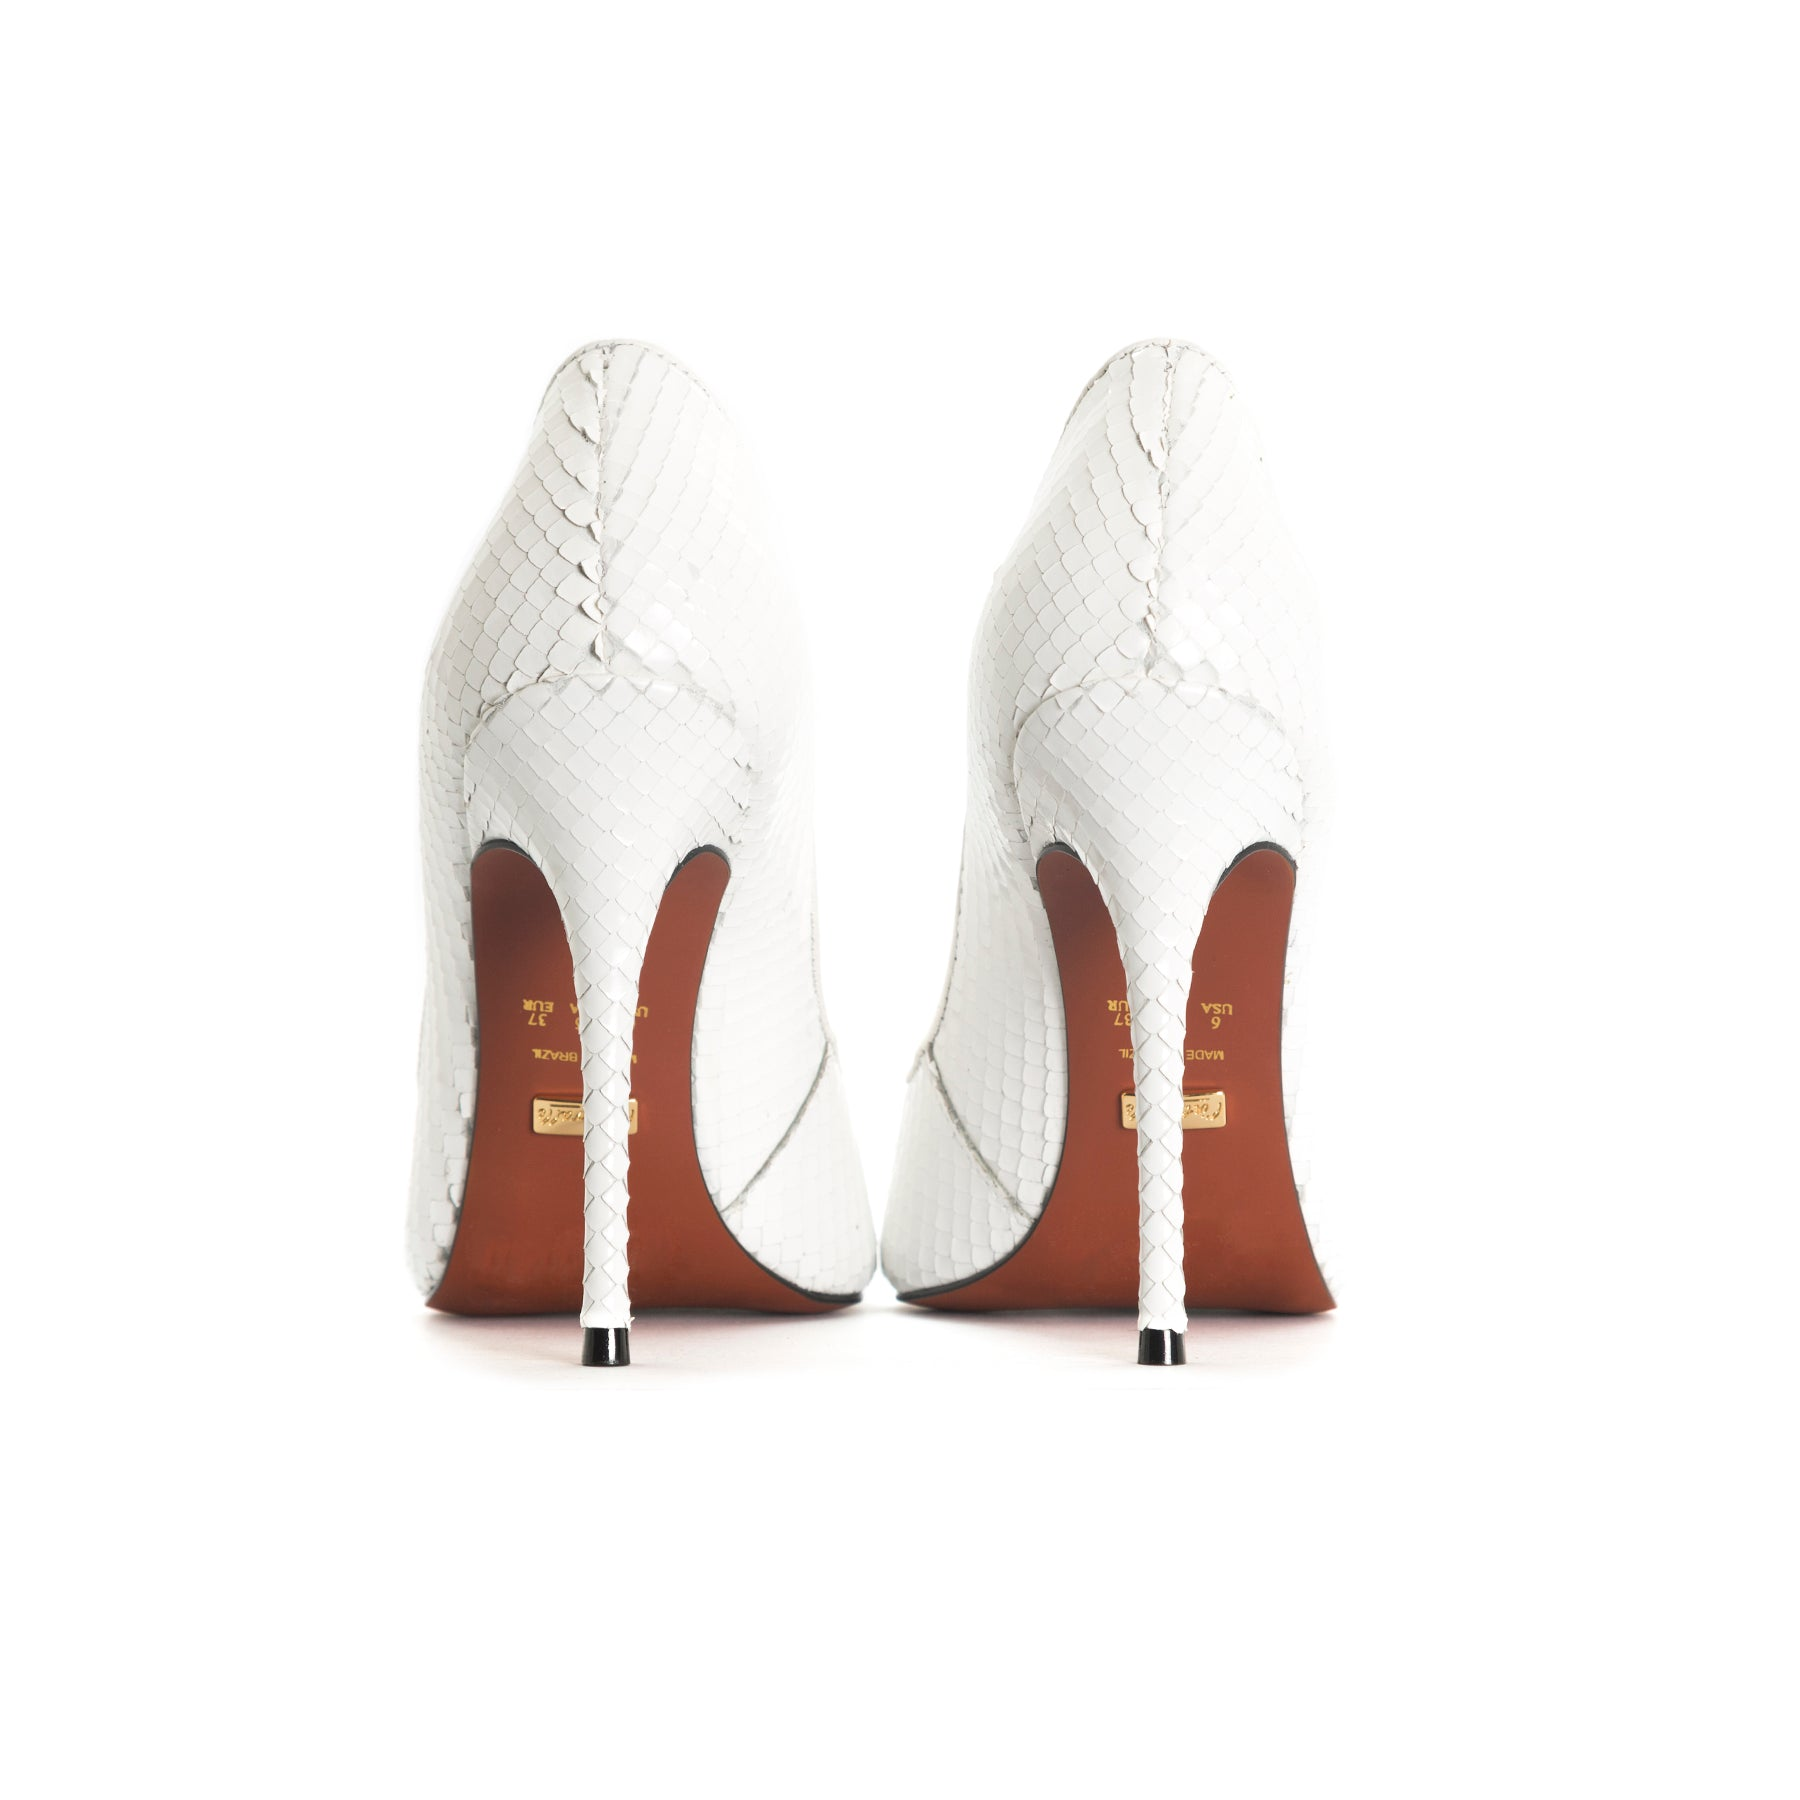 Teeva White Snake Leather Pumps